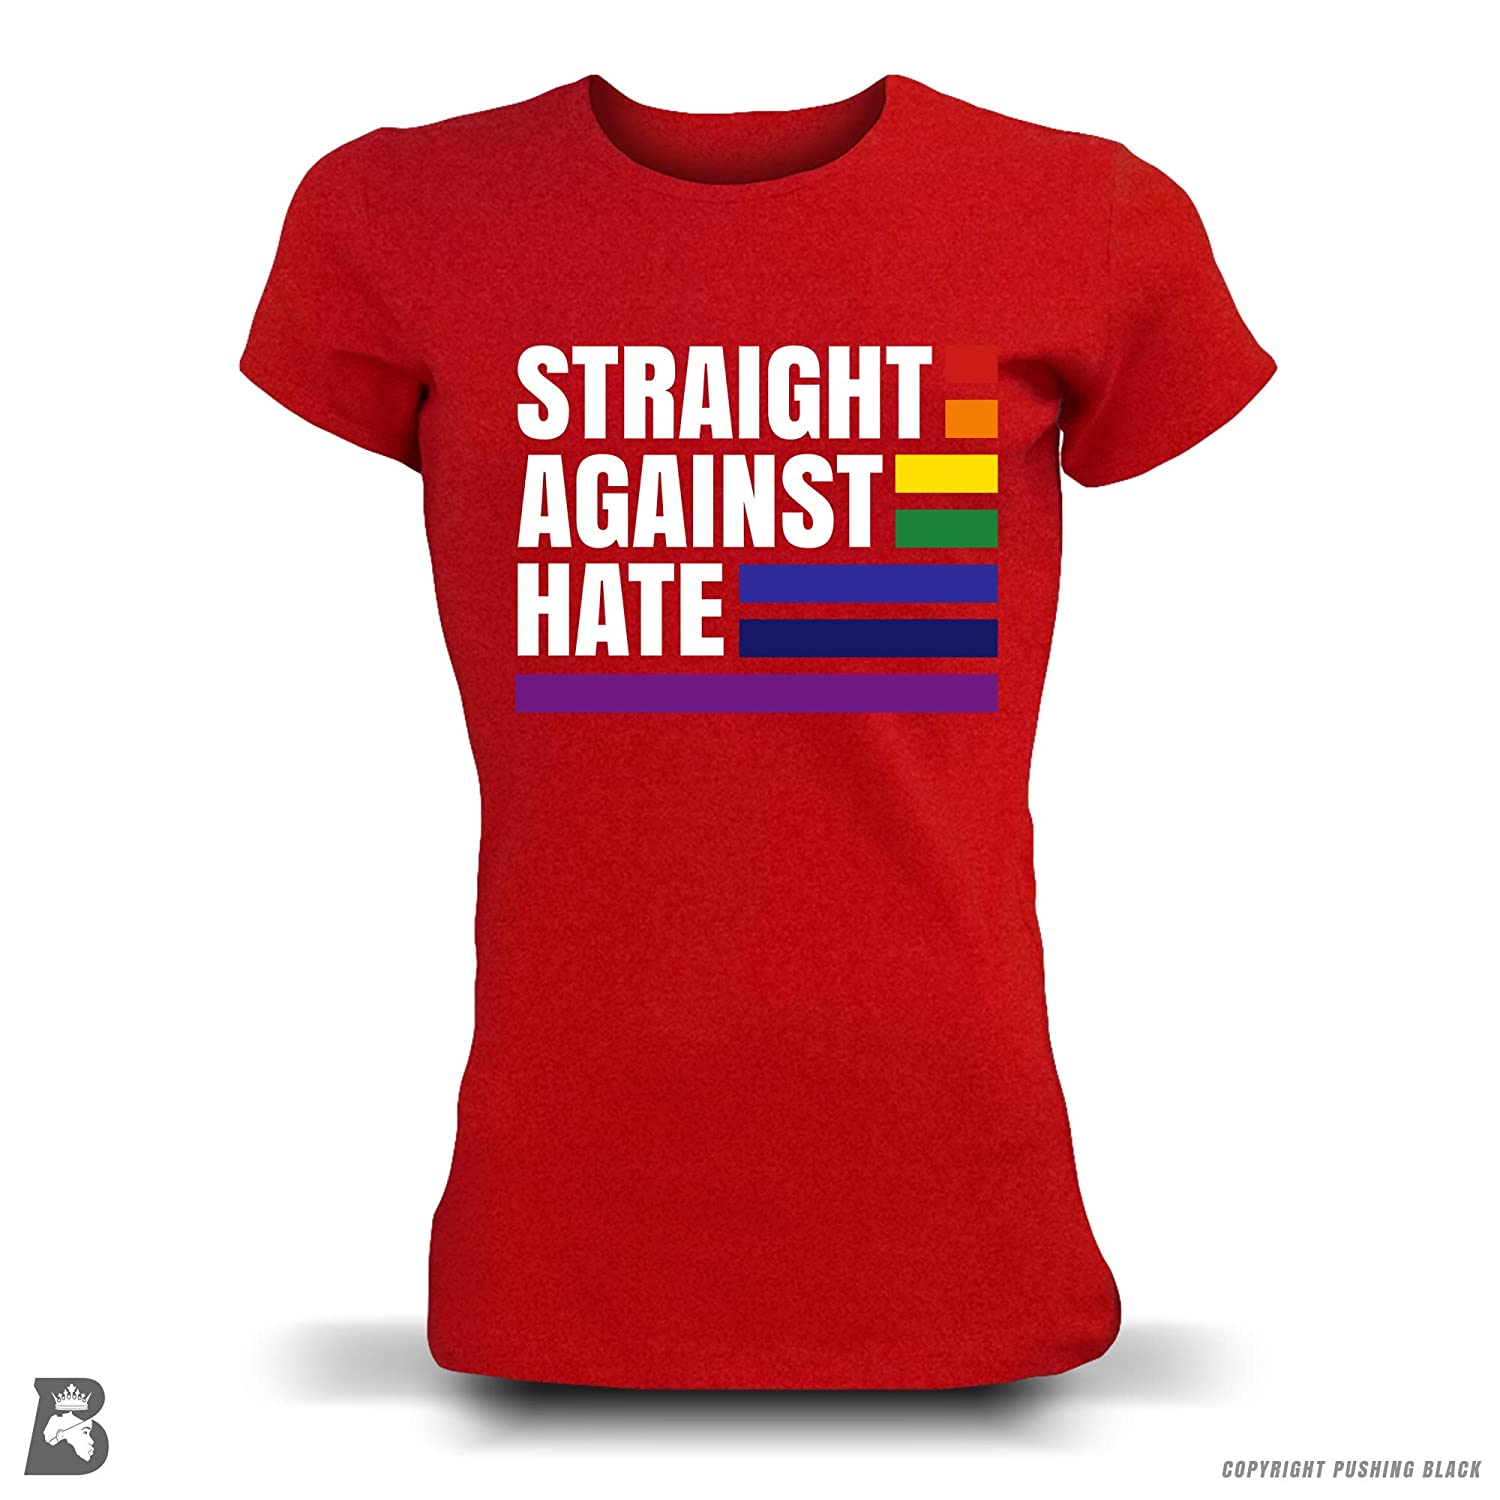 and More Kitchen Aprons Hoodies Sweatshirts Tank Tops Pushing Black Straight Against Hate Gay Pride Month T-Shirts